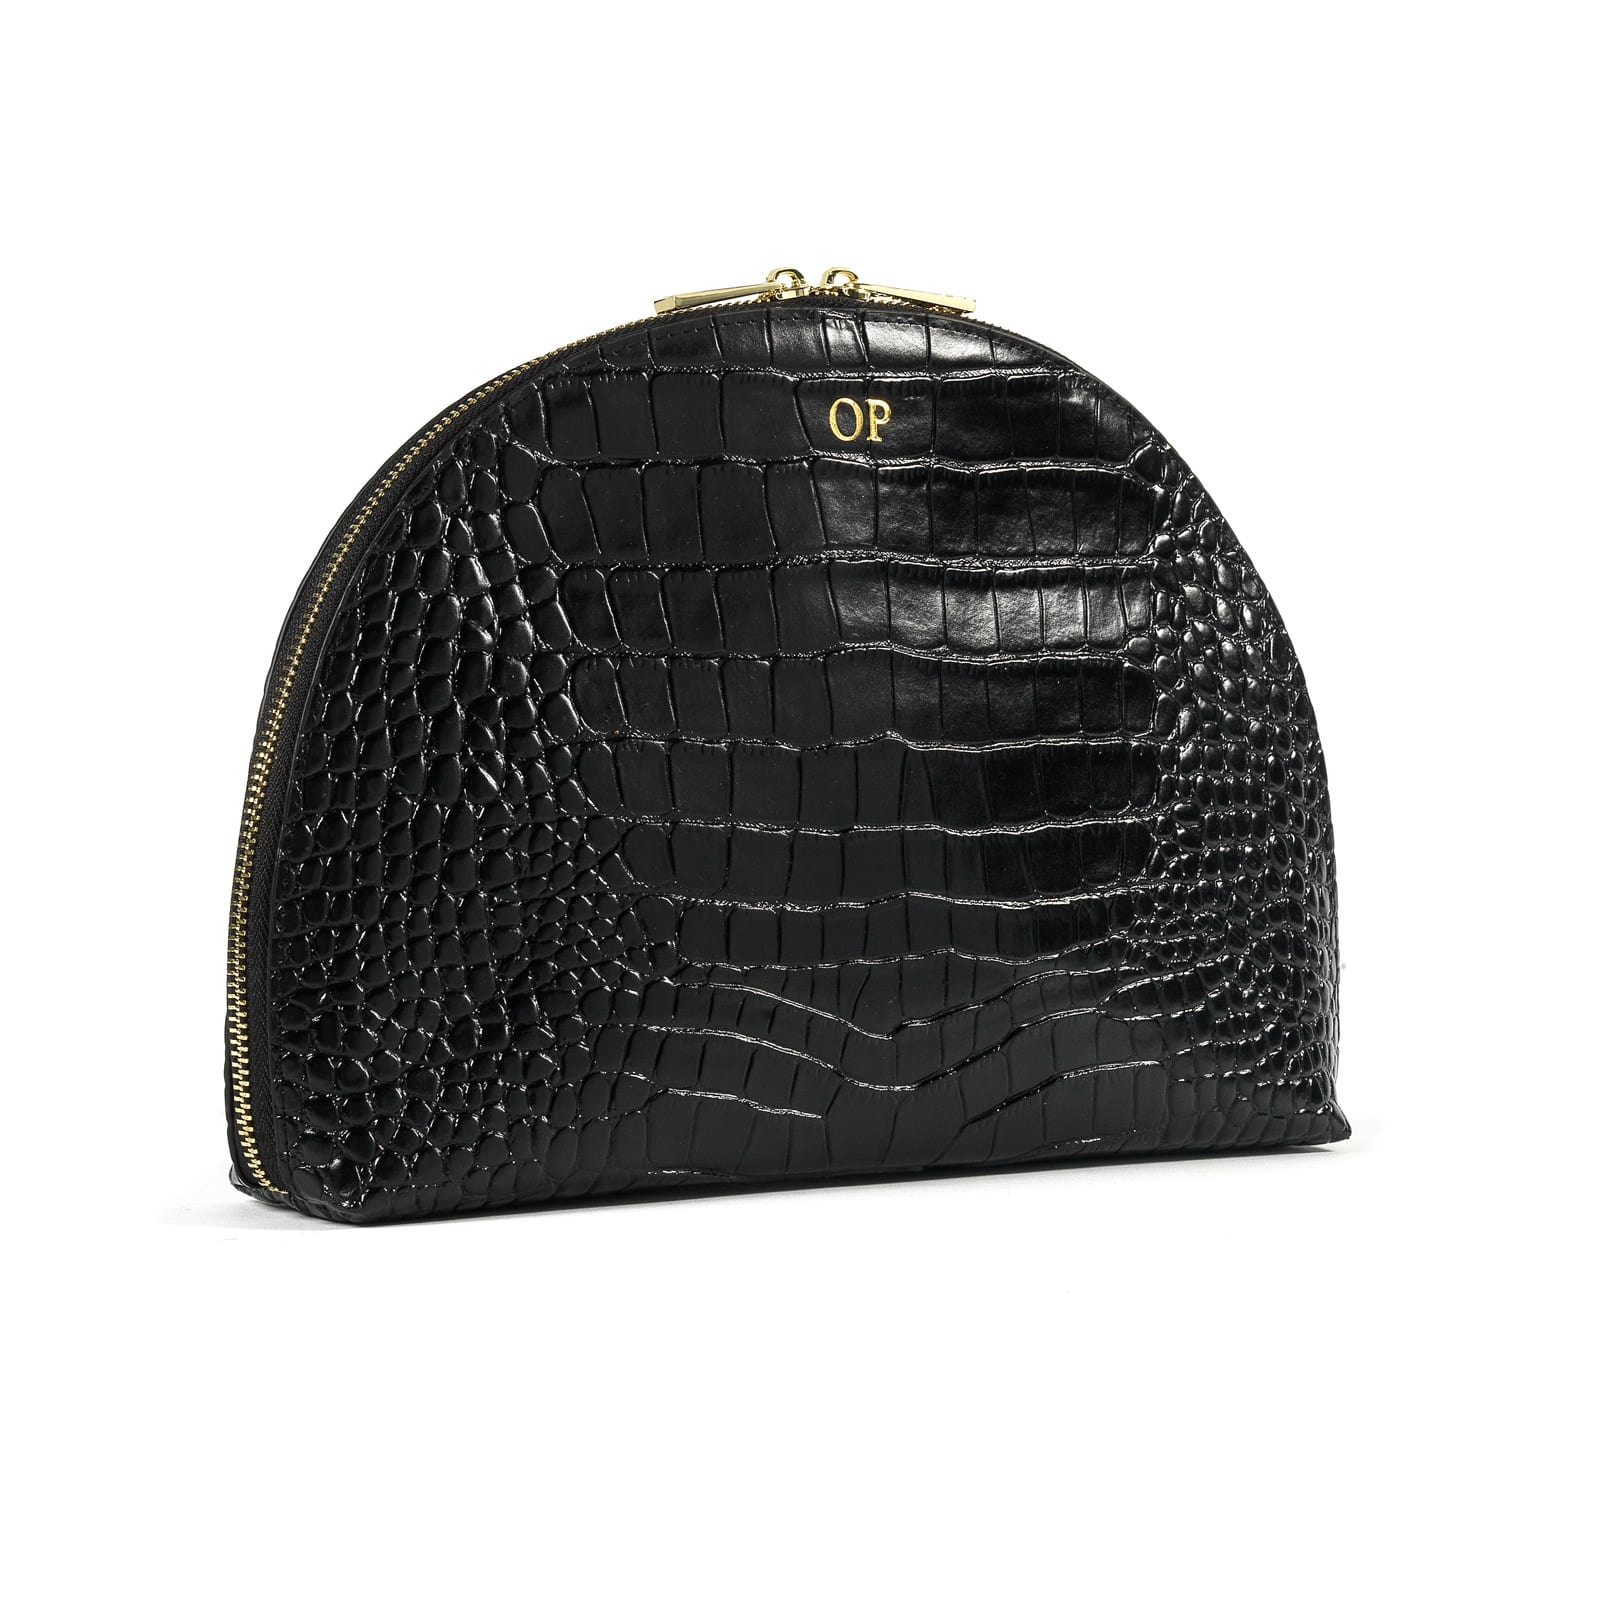 Personalised Black Croc Leather Half Moon Clutch side image